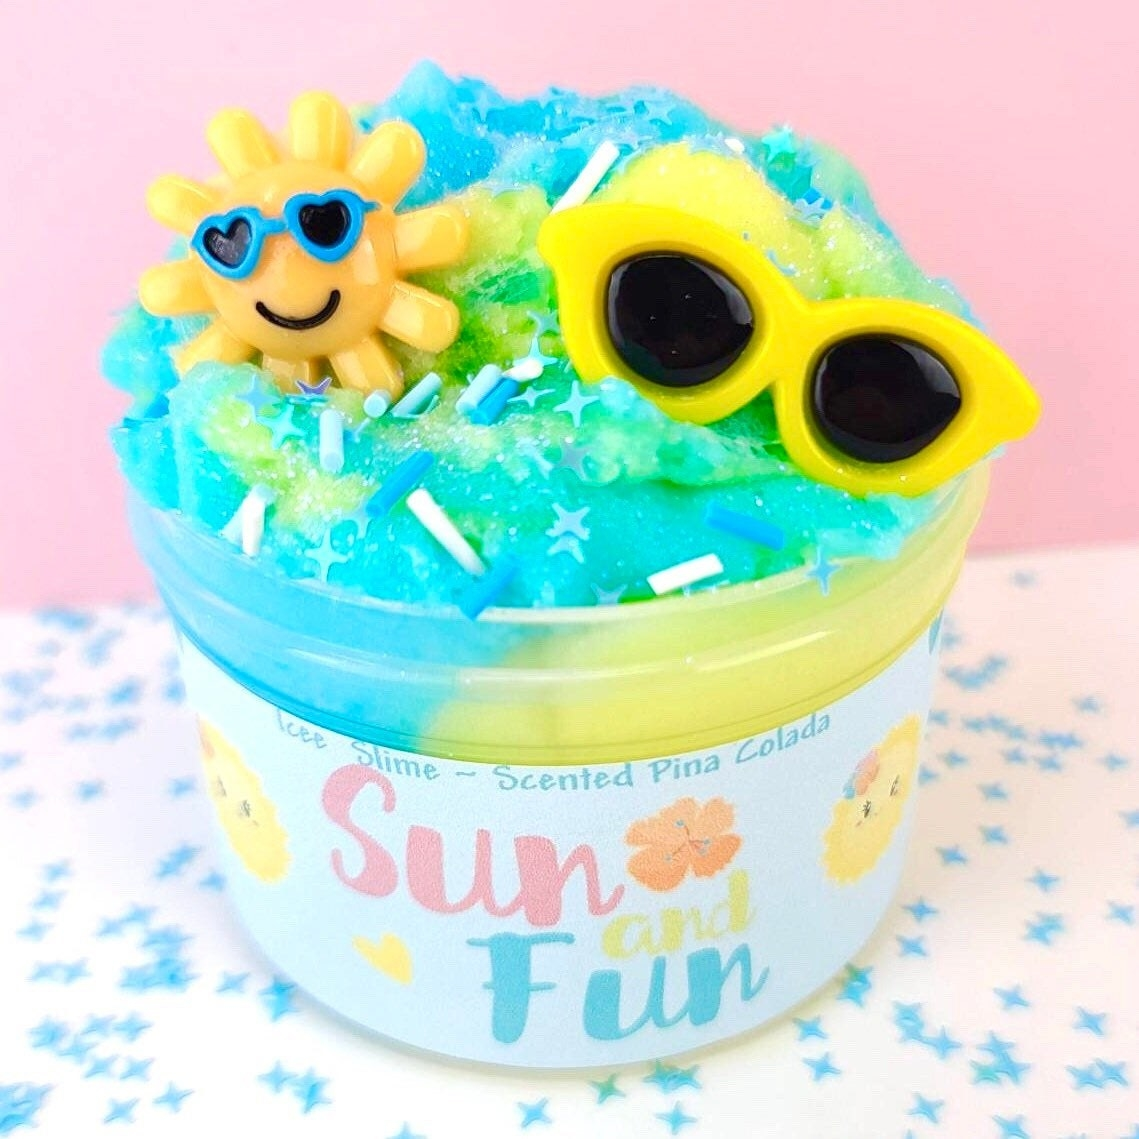 Container of slime with sun wearing sunglasses